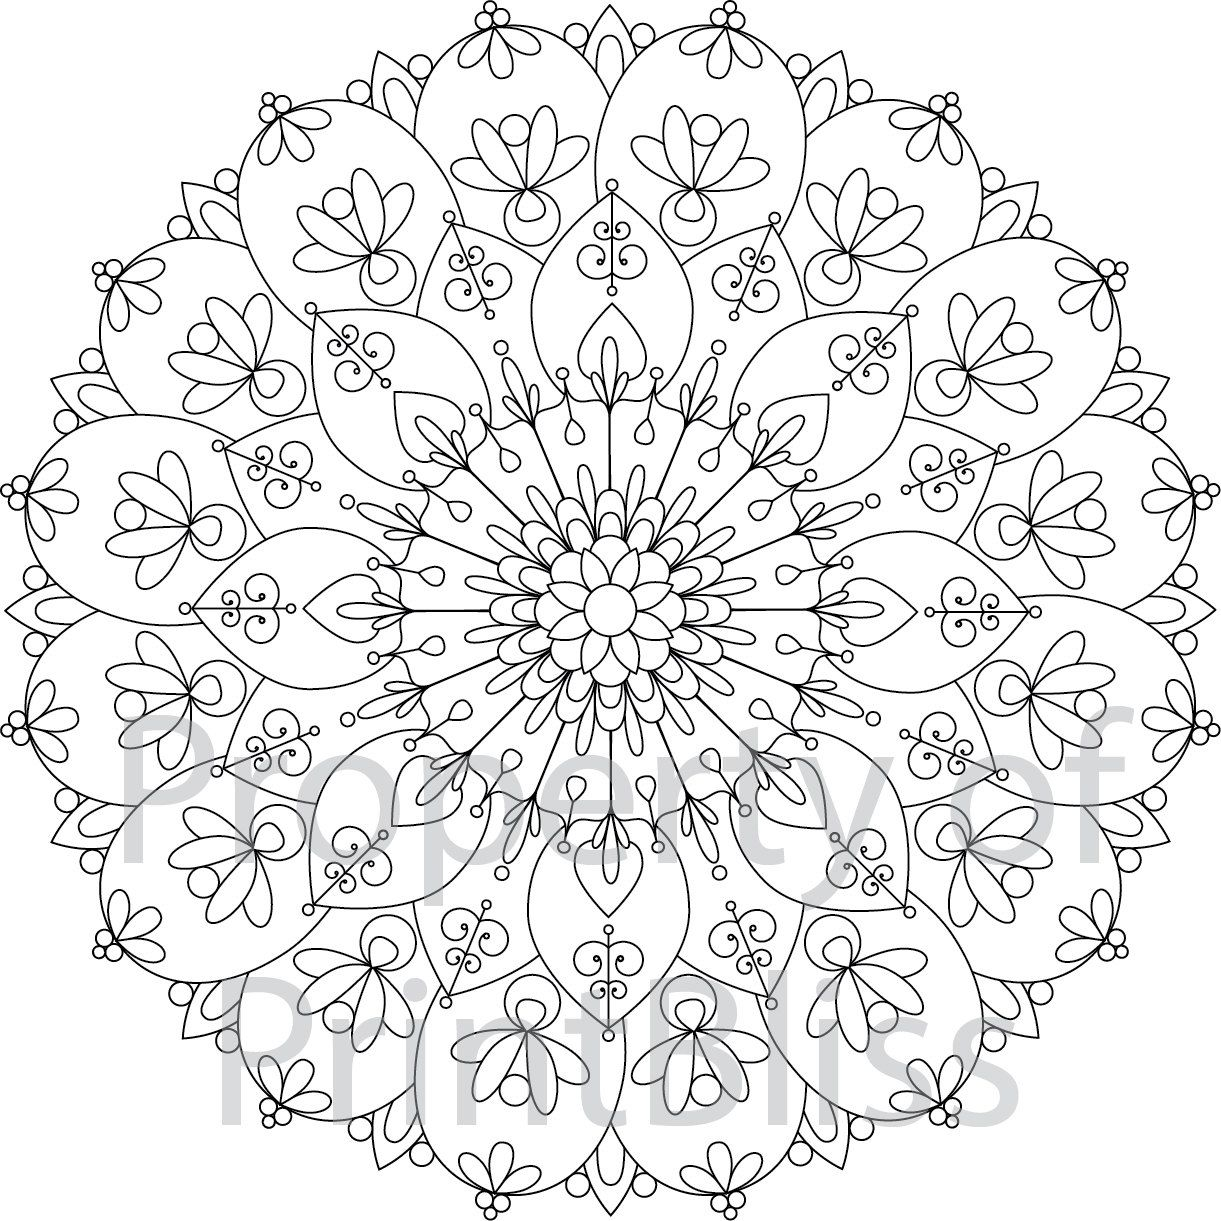 7 Flower Mandala Printable Coloring Page By Printbliss